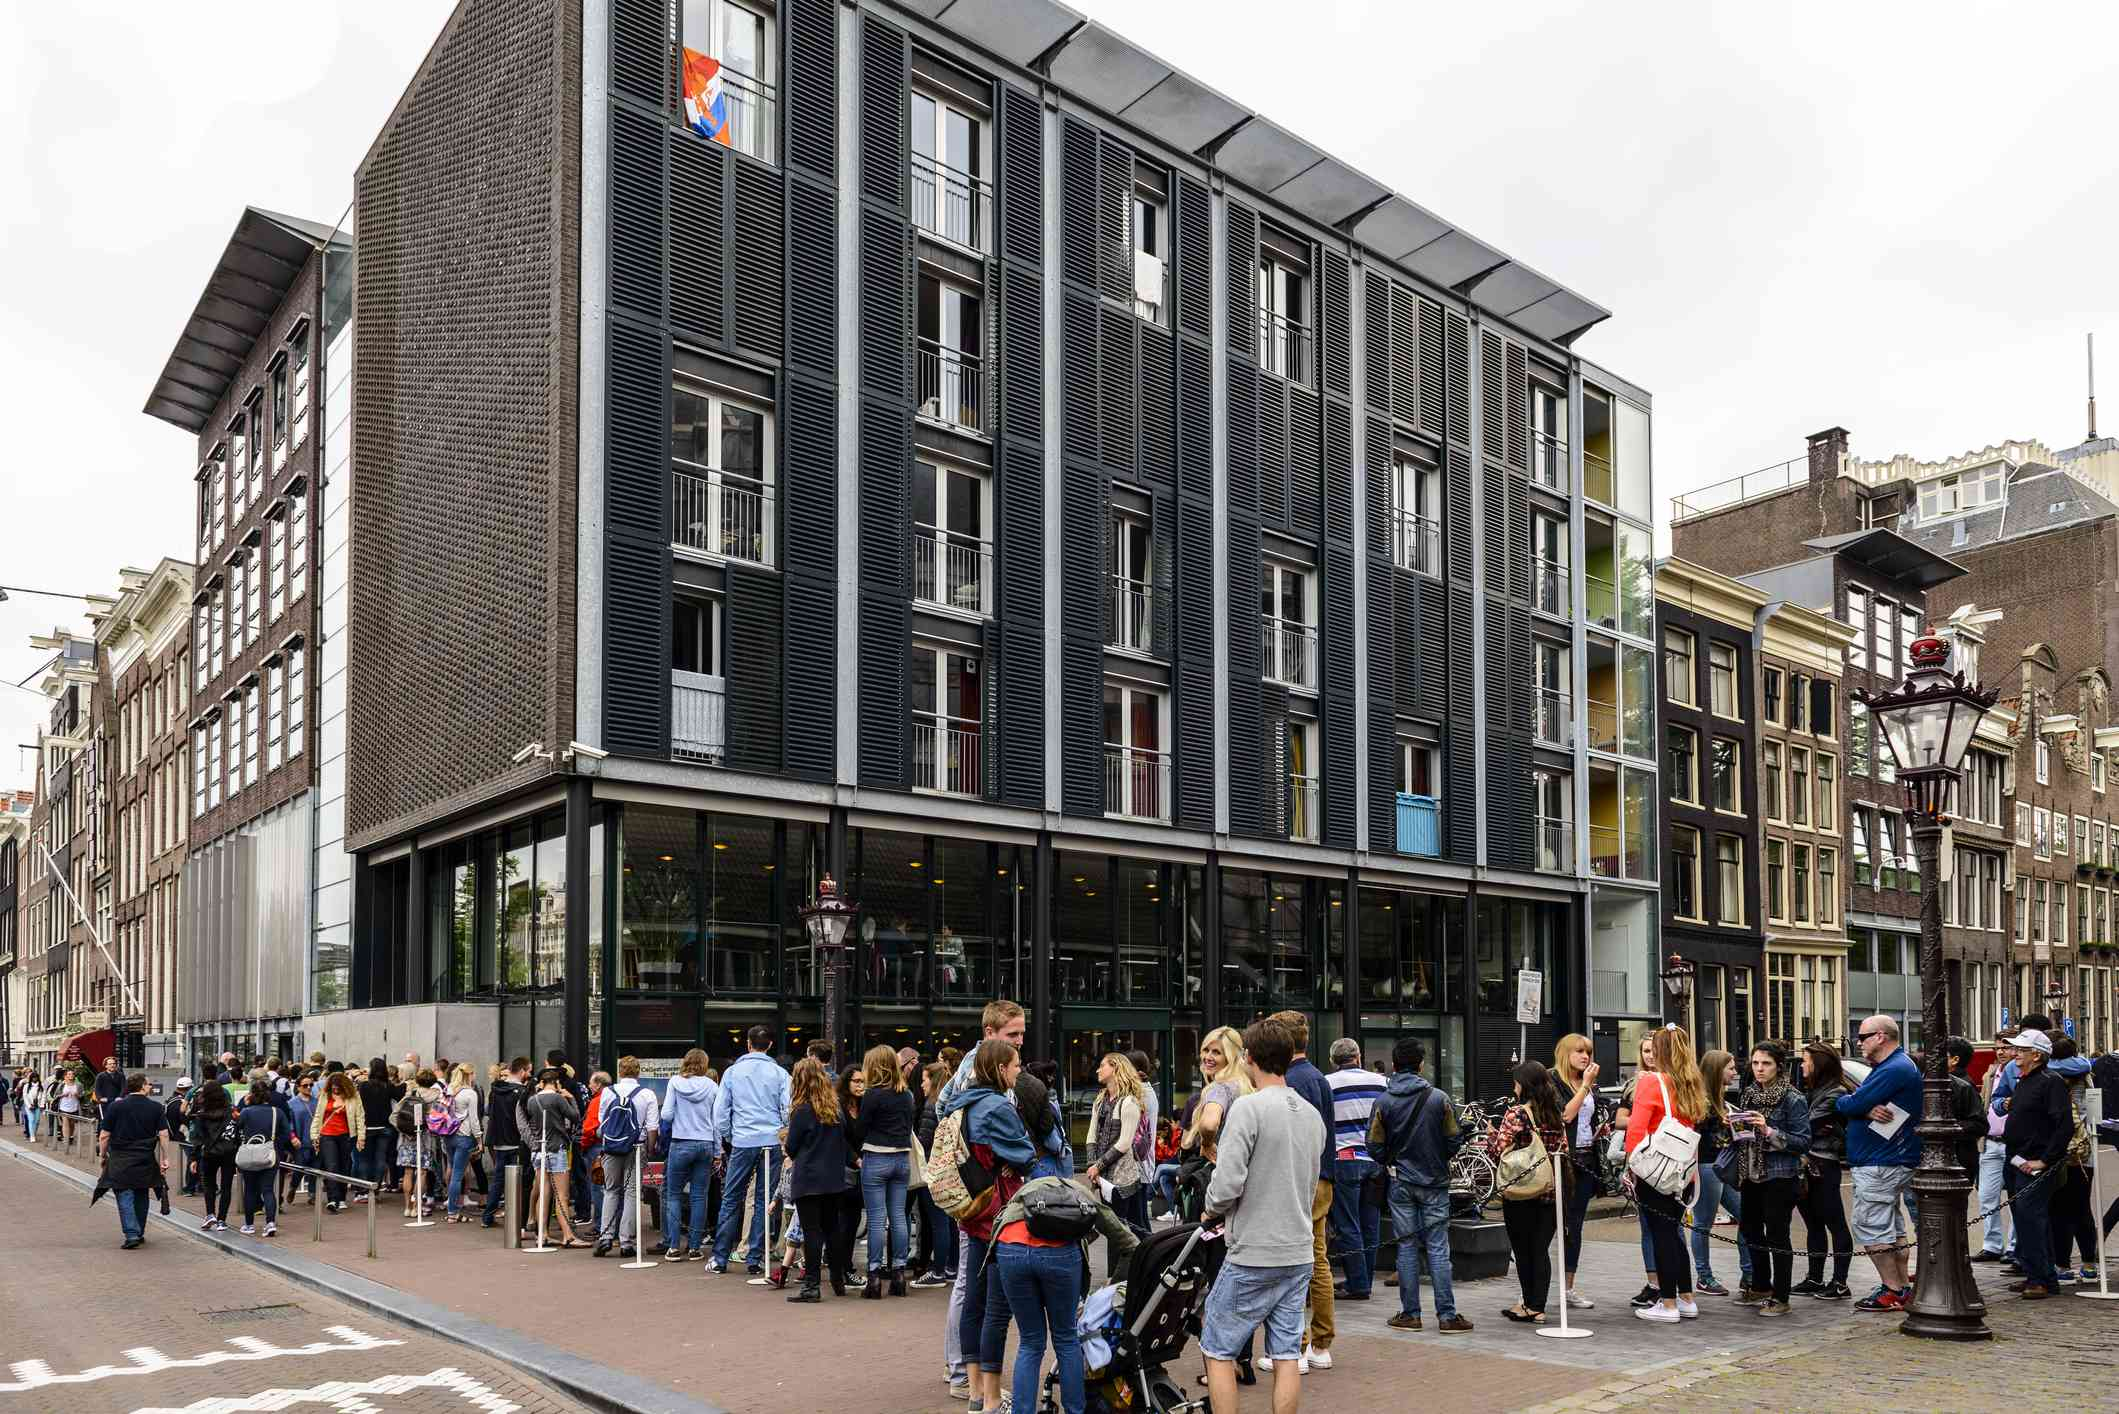 Tourists waiting in line to enter the Anne Frank house and Anne Frank Museum at the Prinsengracht in Amsterdam, The Netherlands.